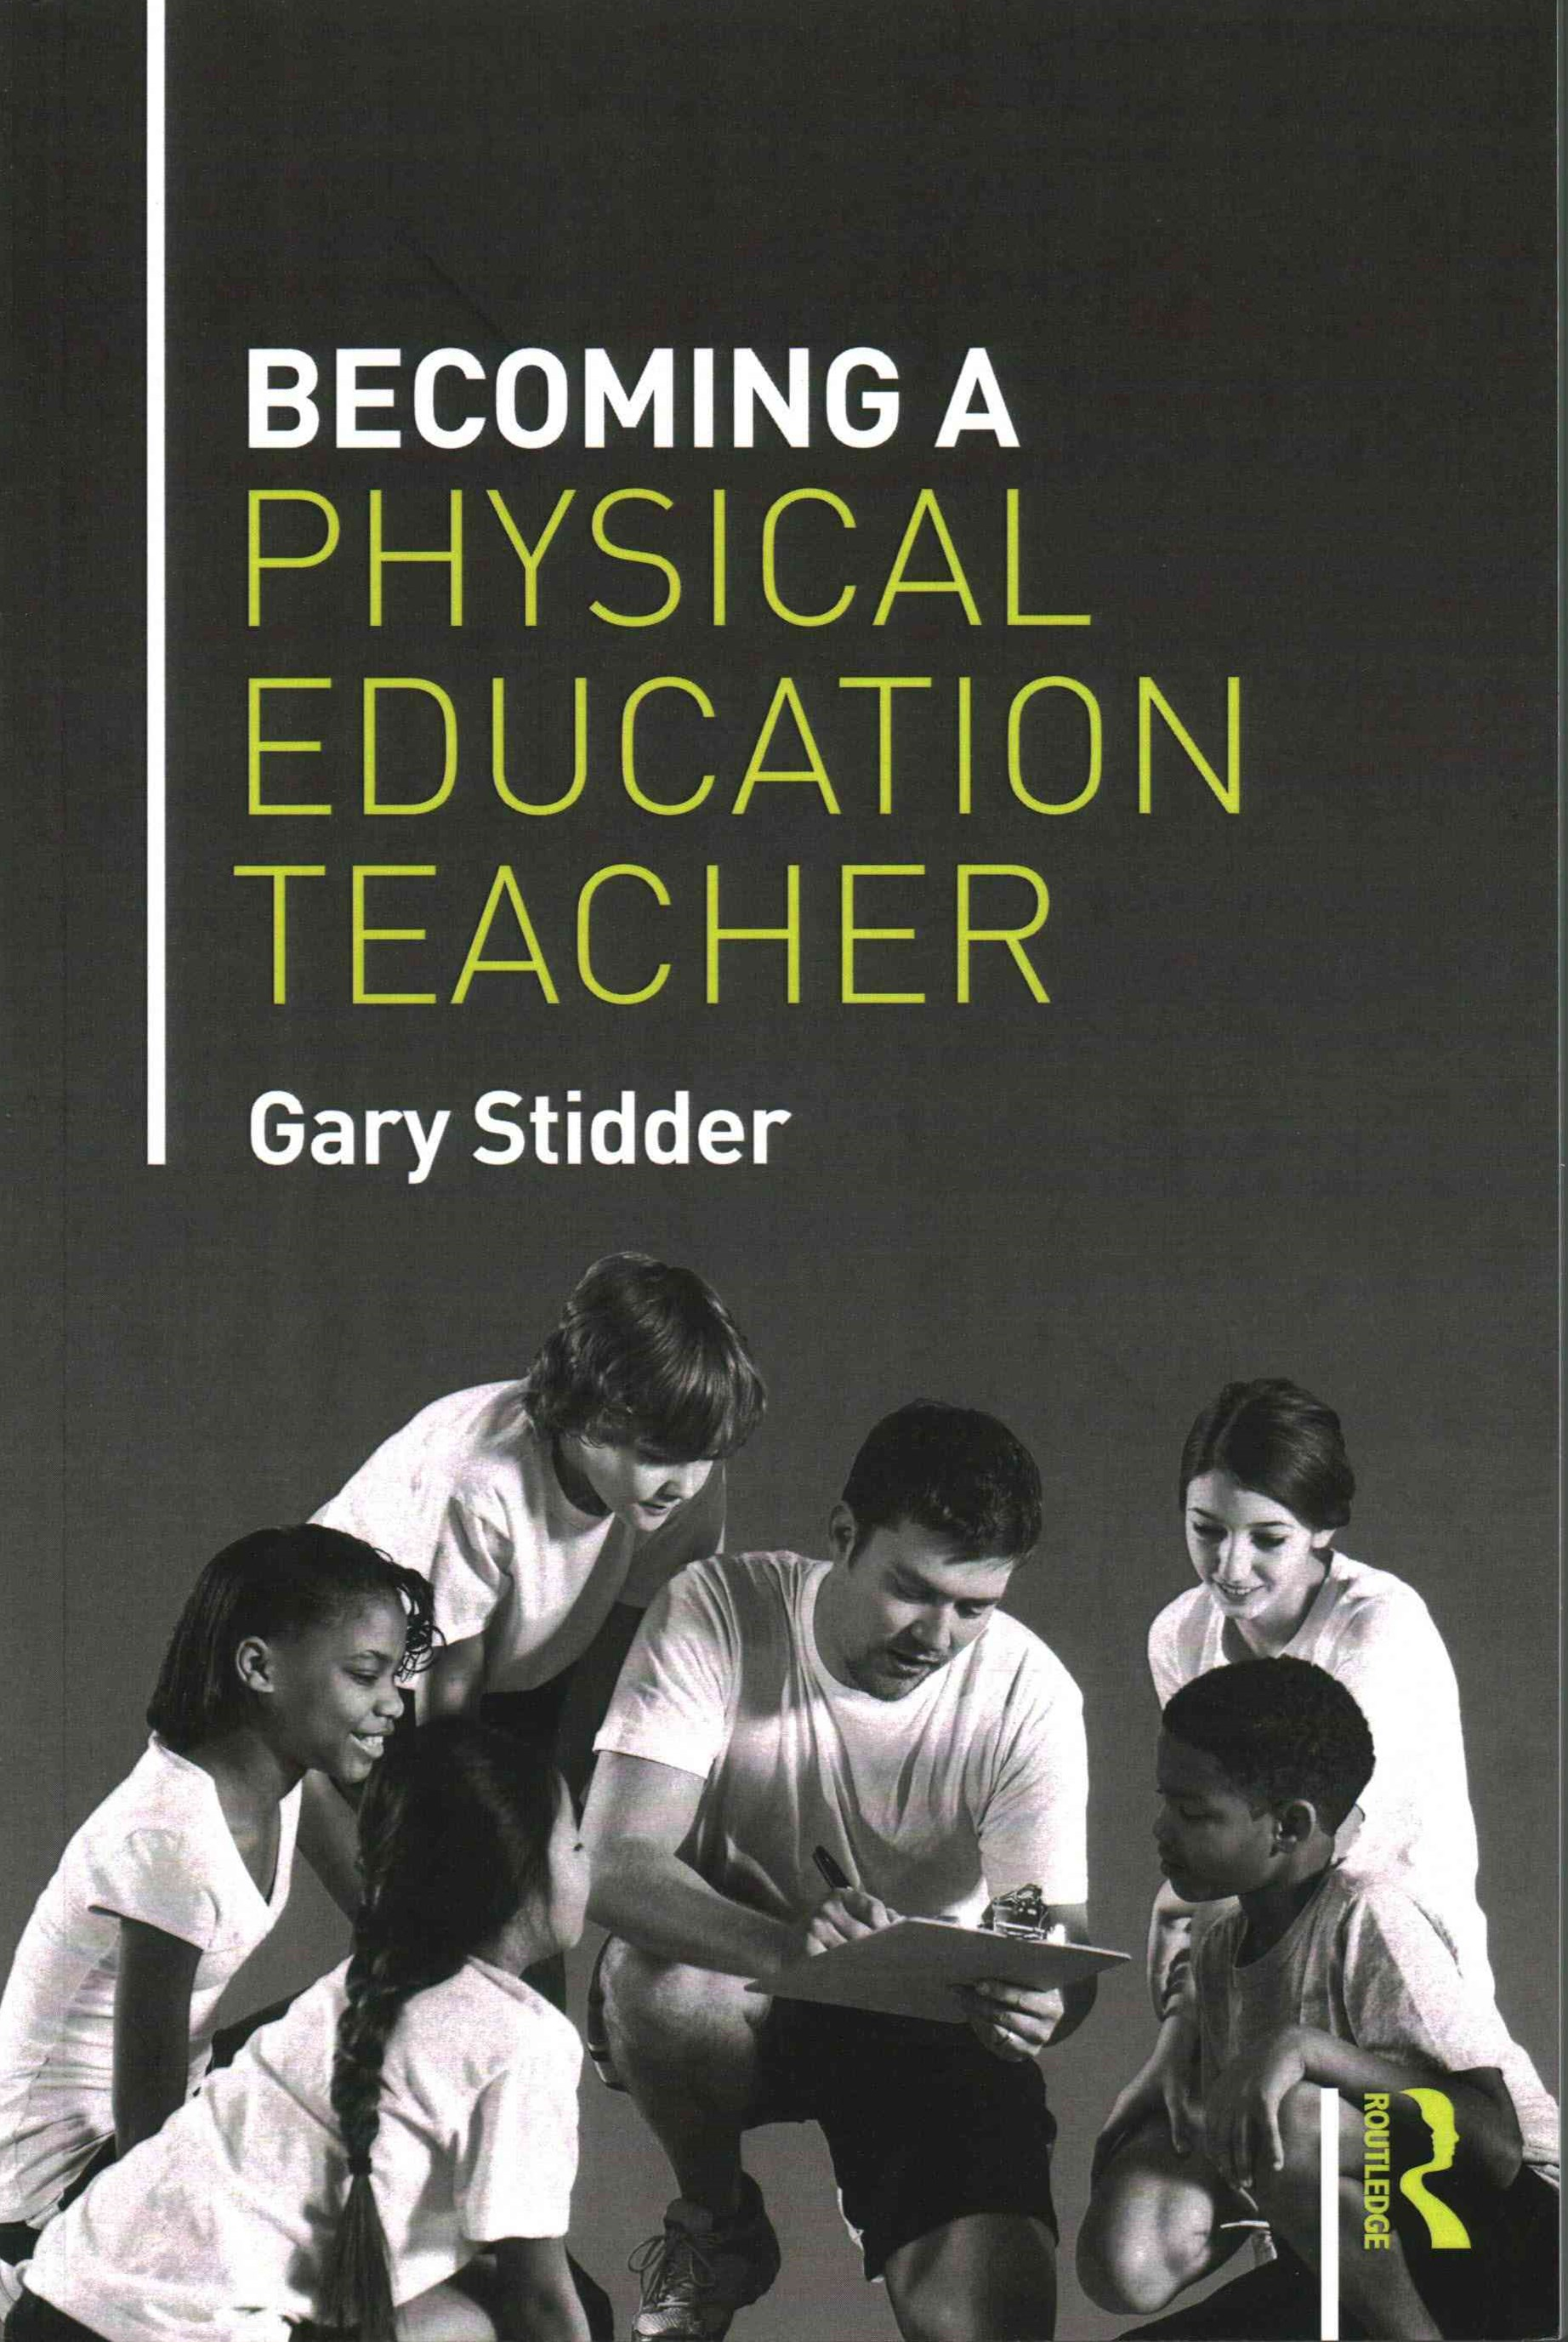 Becoming a Physical Education Teacher